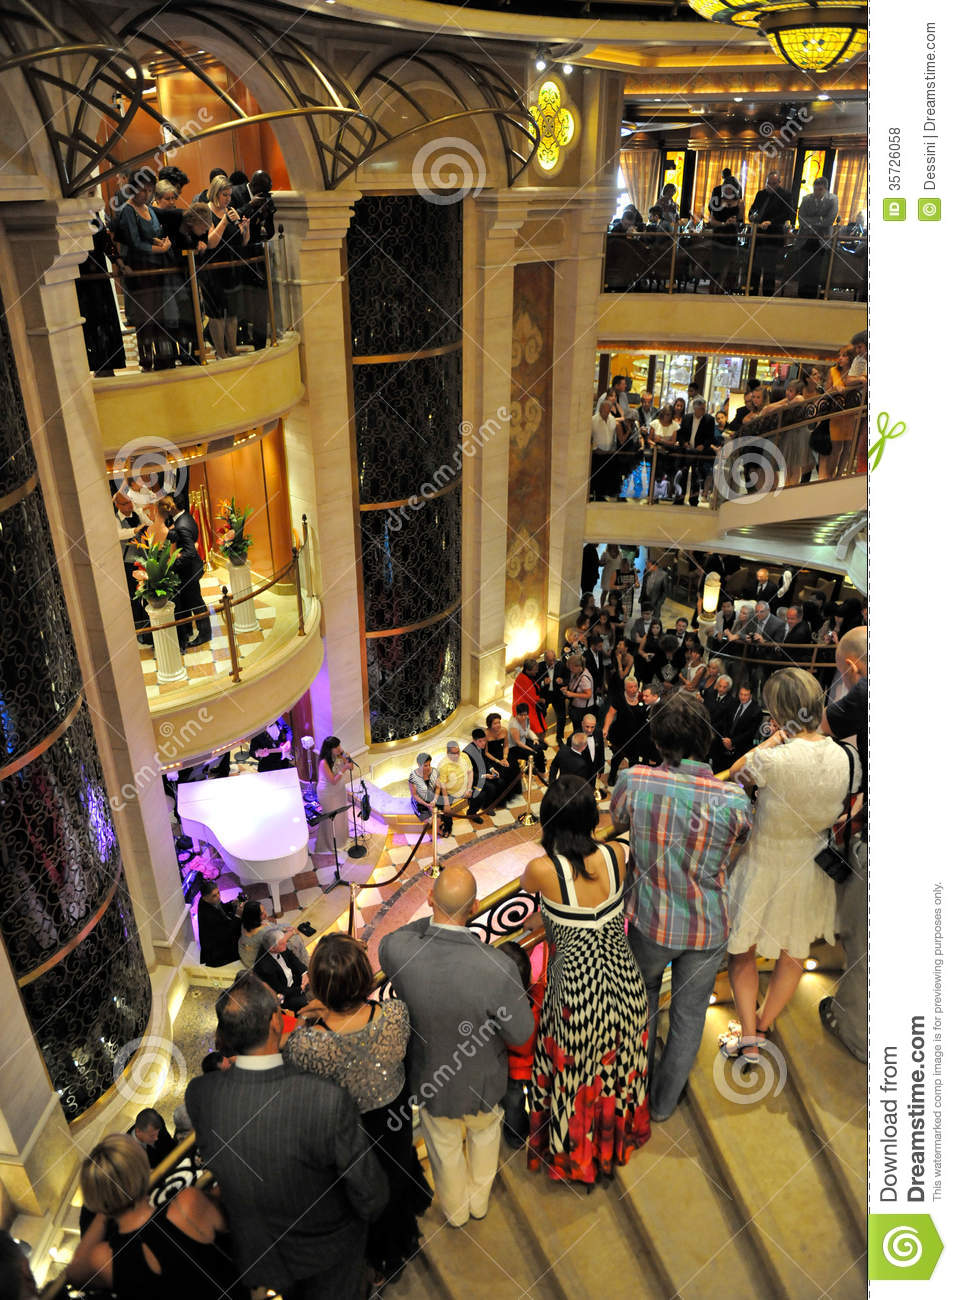 Party Inside Cruise Ship Editorial Stock Photo Image